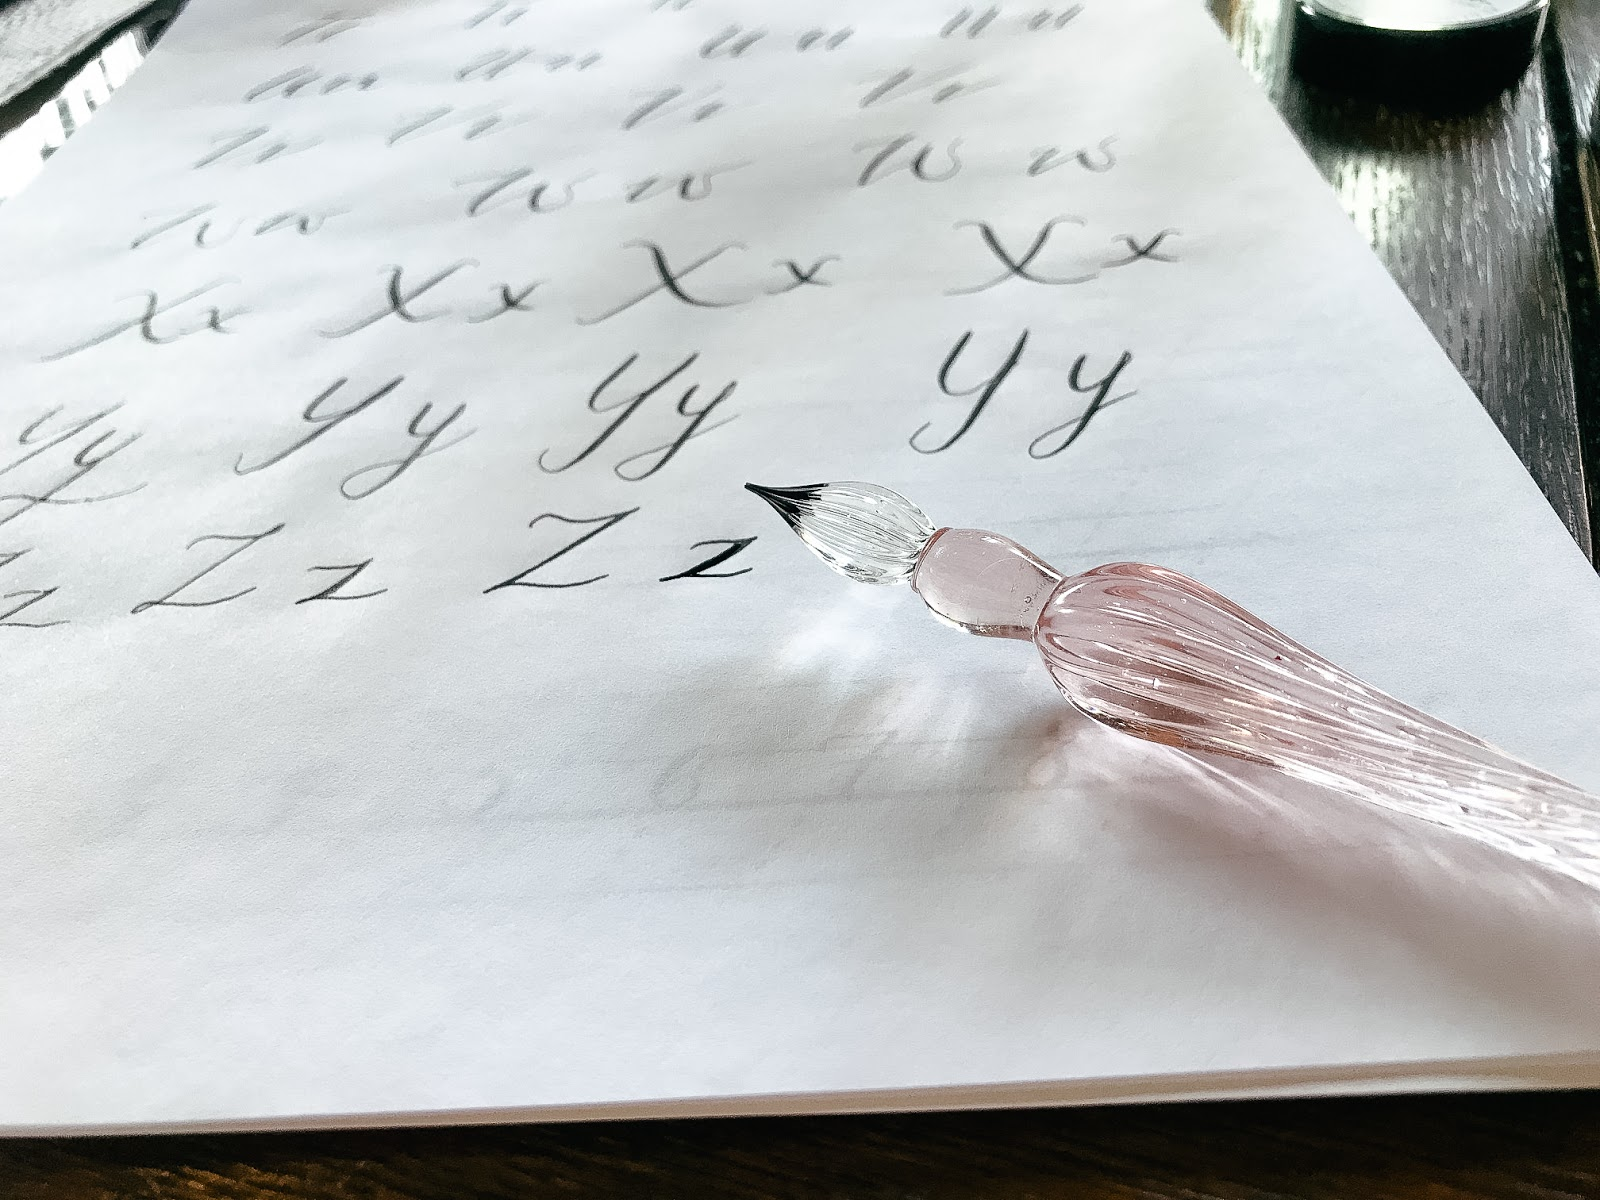 Victoria Blum Calligraphy Workshop in Hampshire